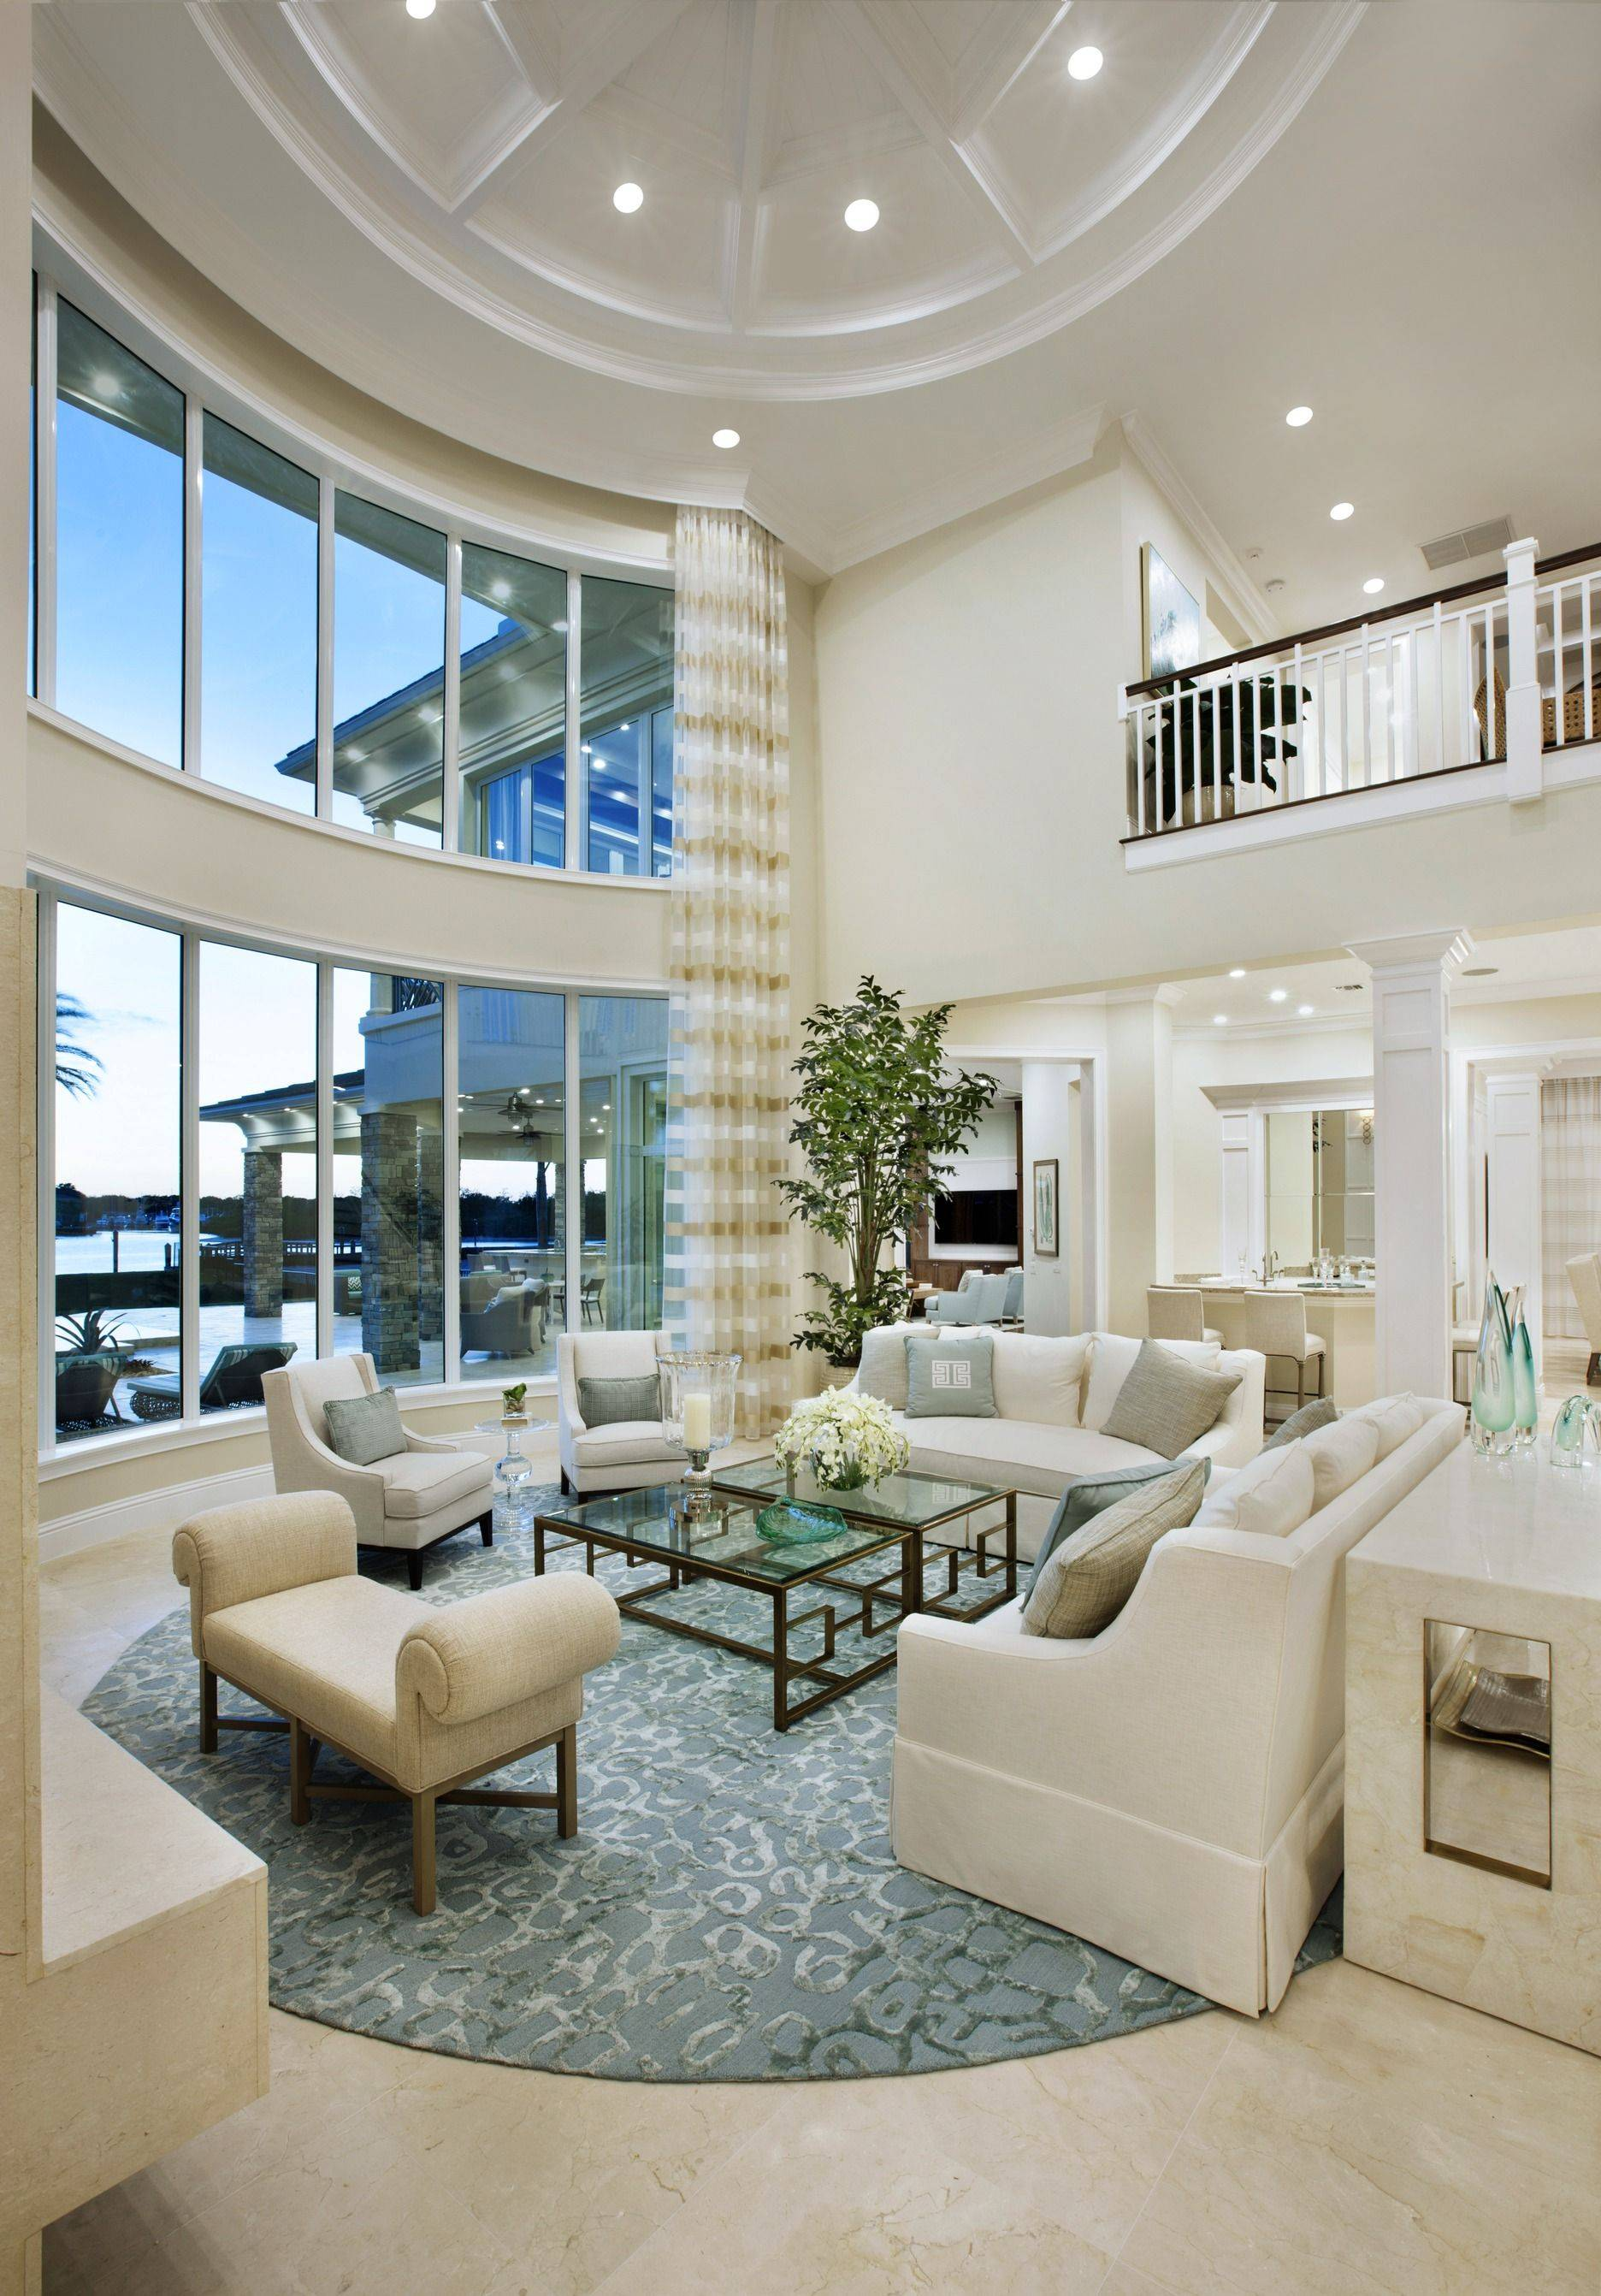 home decor ideas living room dream houses bedrooms window awesome stunning floor to ceiling windows in this gorgeous two story living of home decor ideas living room dream houses bedrooms wi